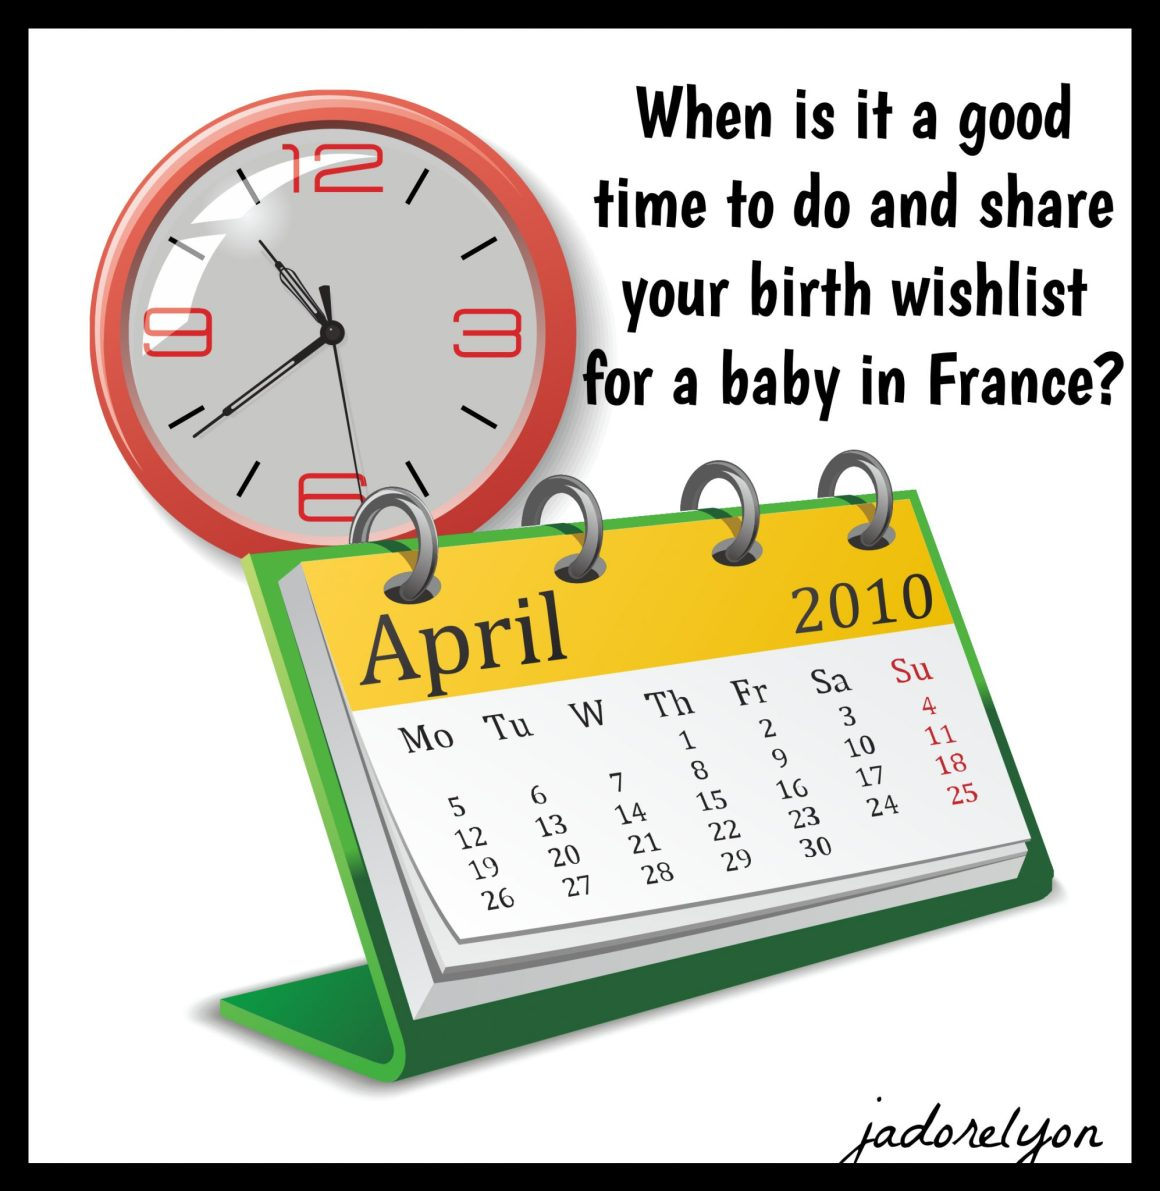 Lastly, when is it a good time to do and share your birth wishlist for a baby in France_